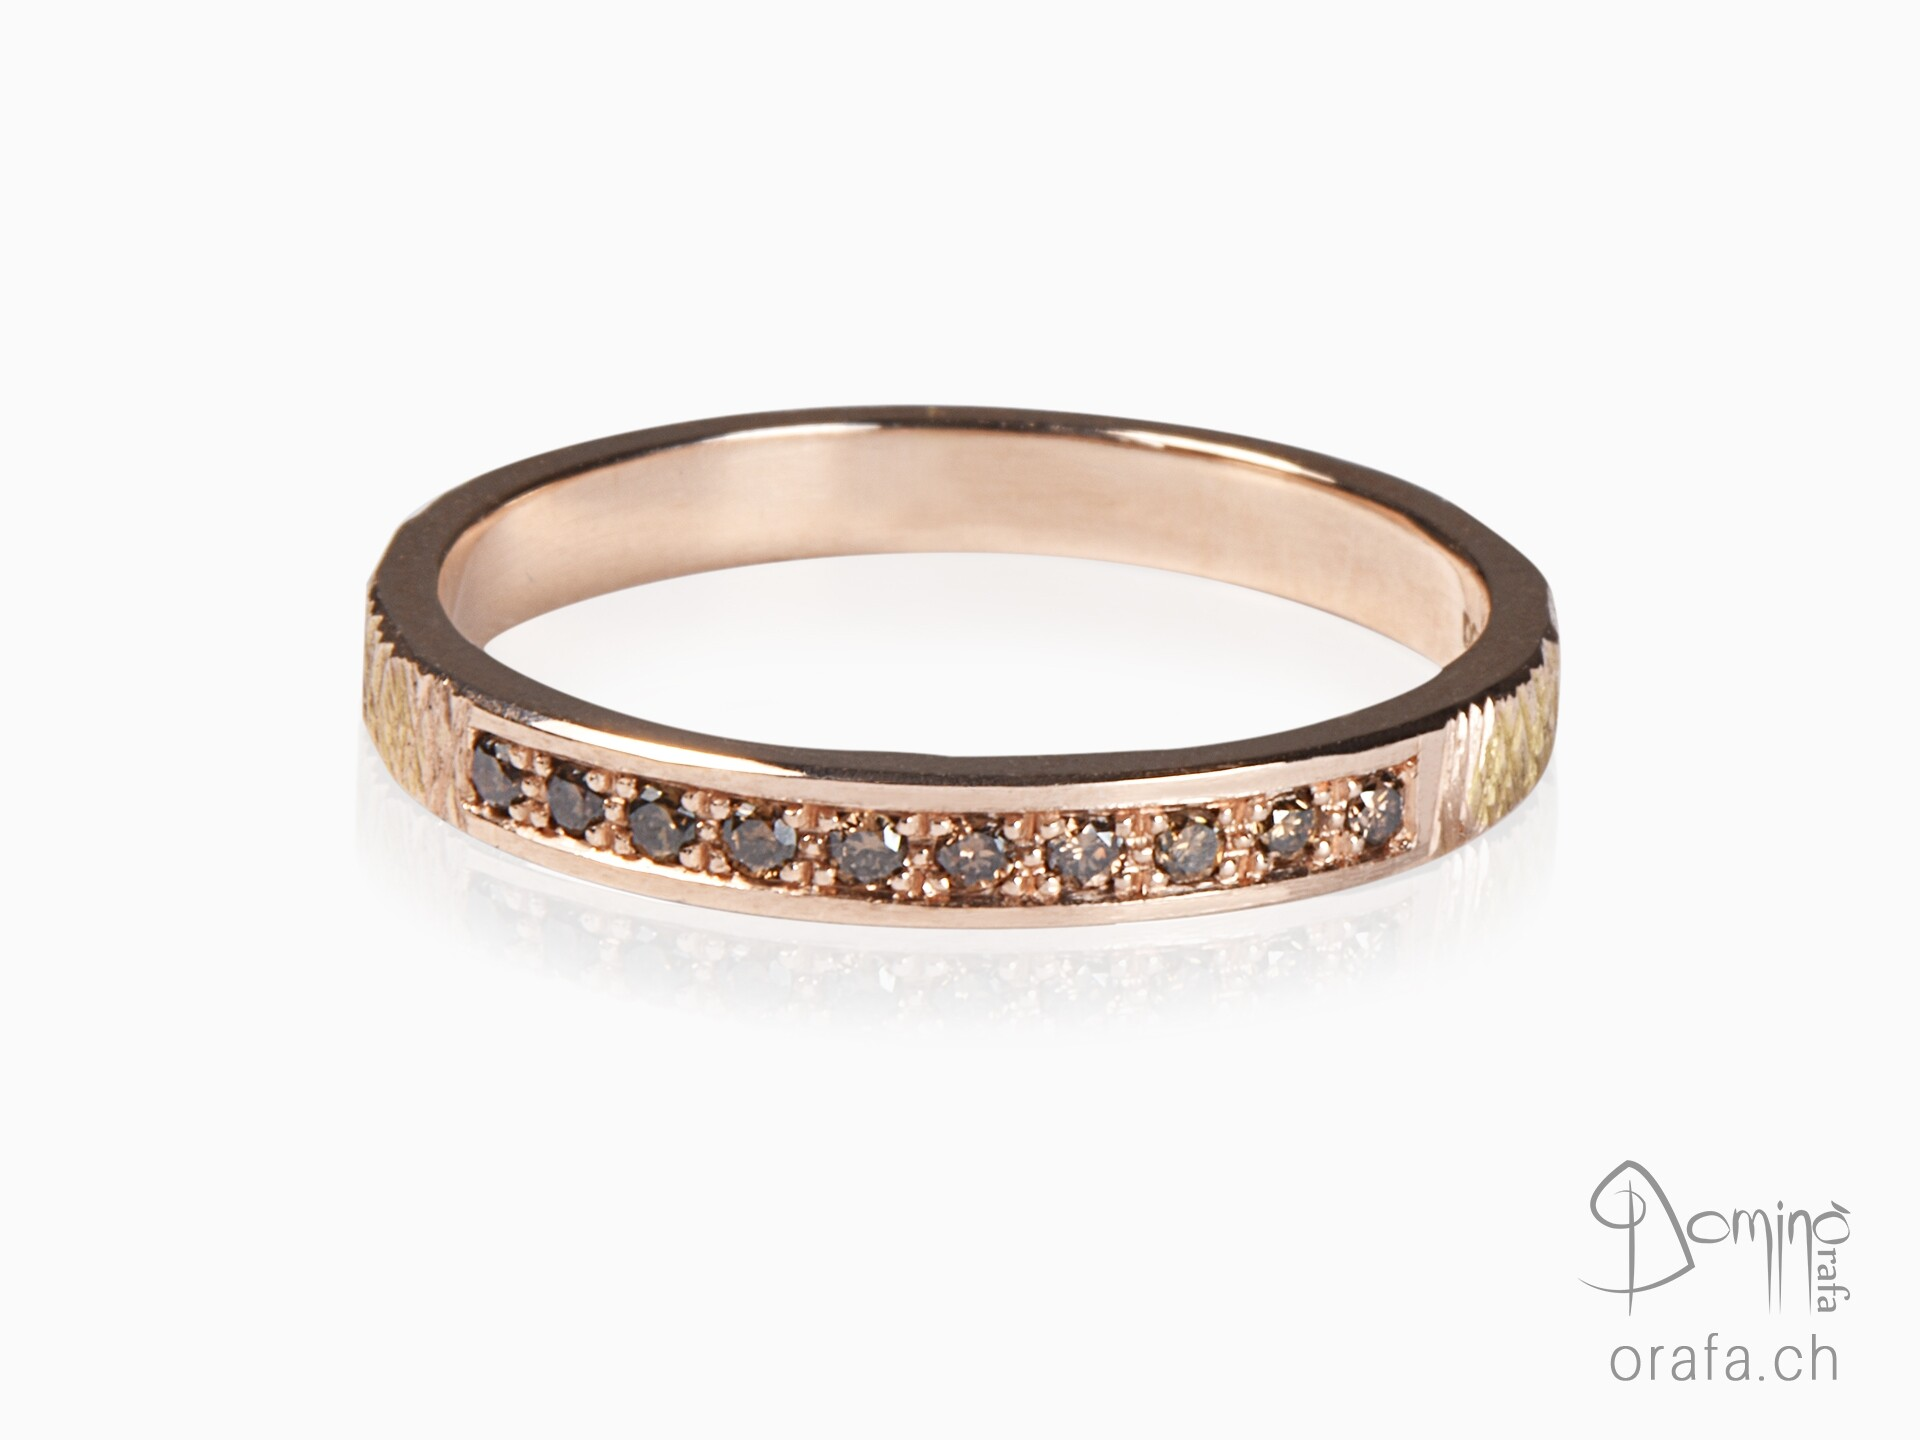 Red gold ring with brown diamonds